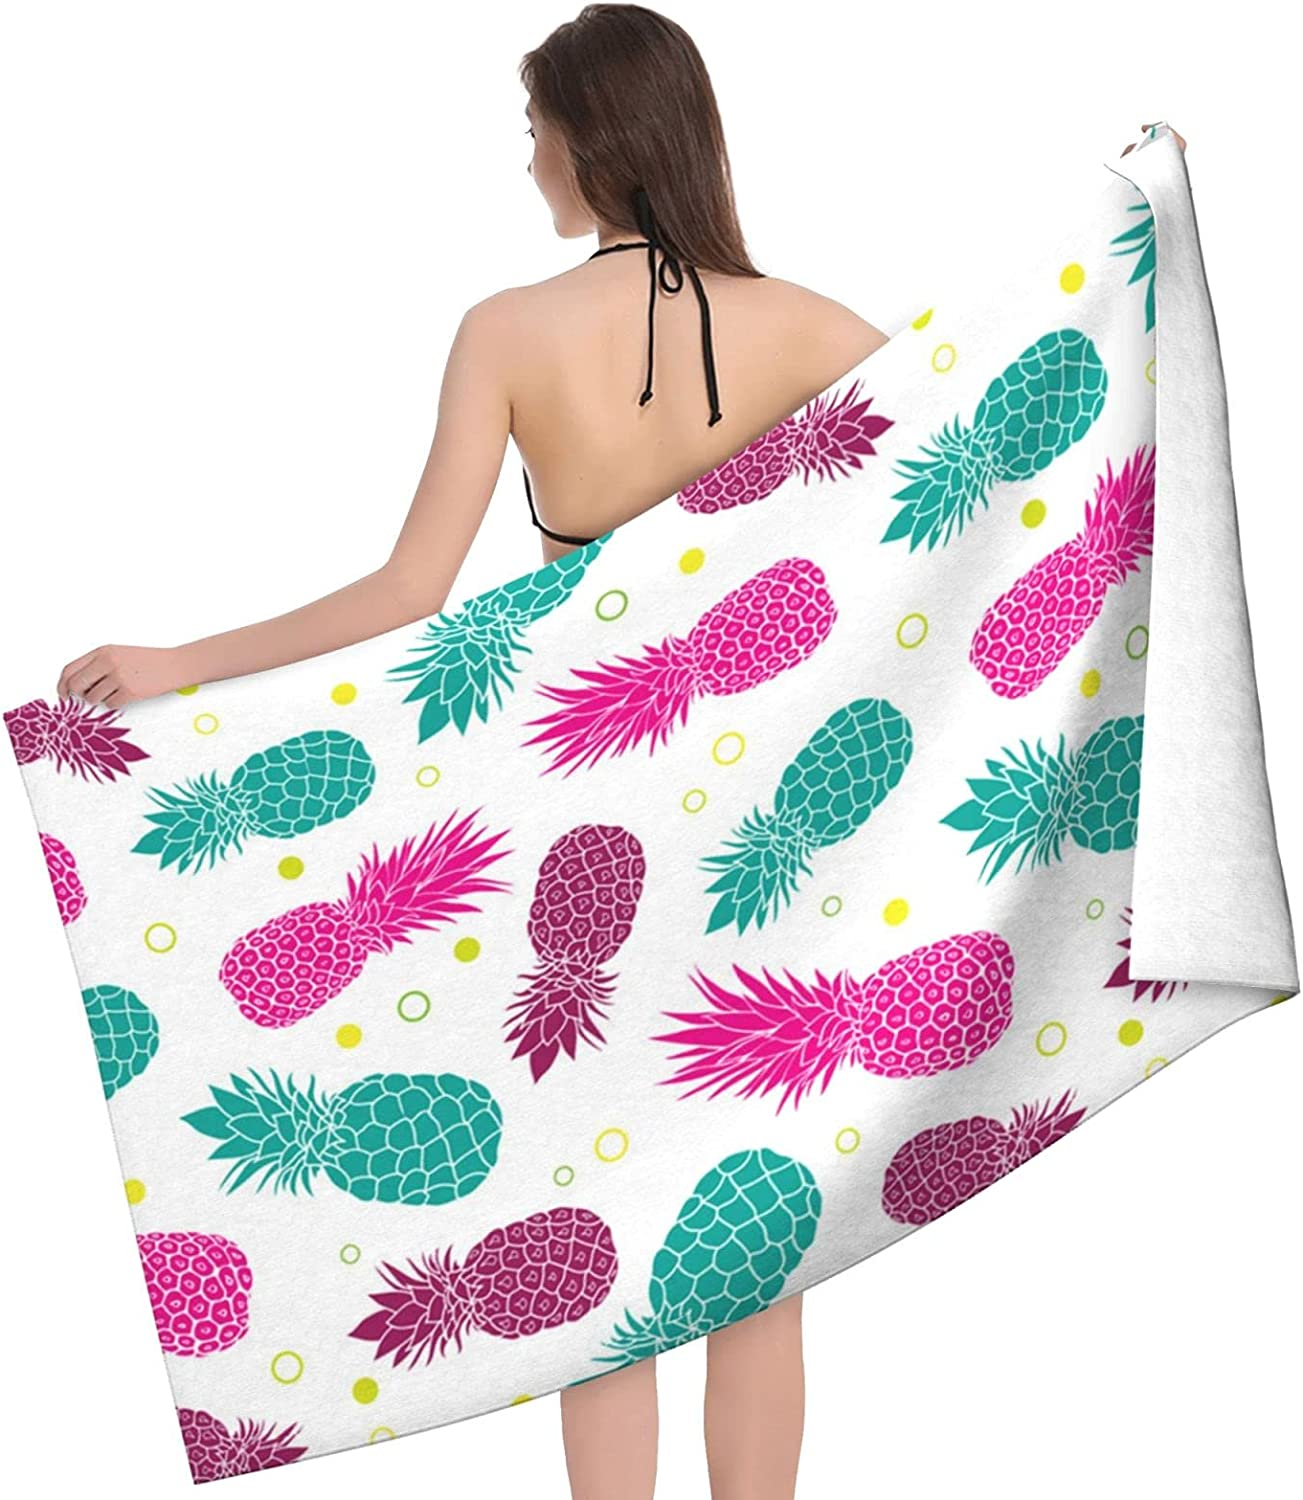 Tropical Pineapple Store Print Adult Beach New product type Double Towel - Towels